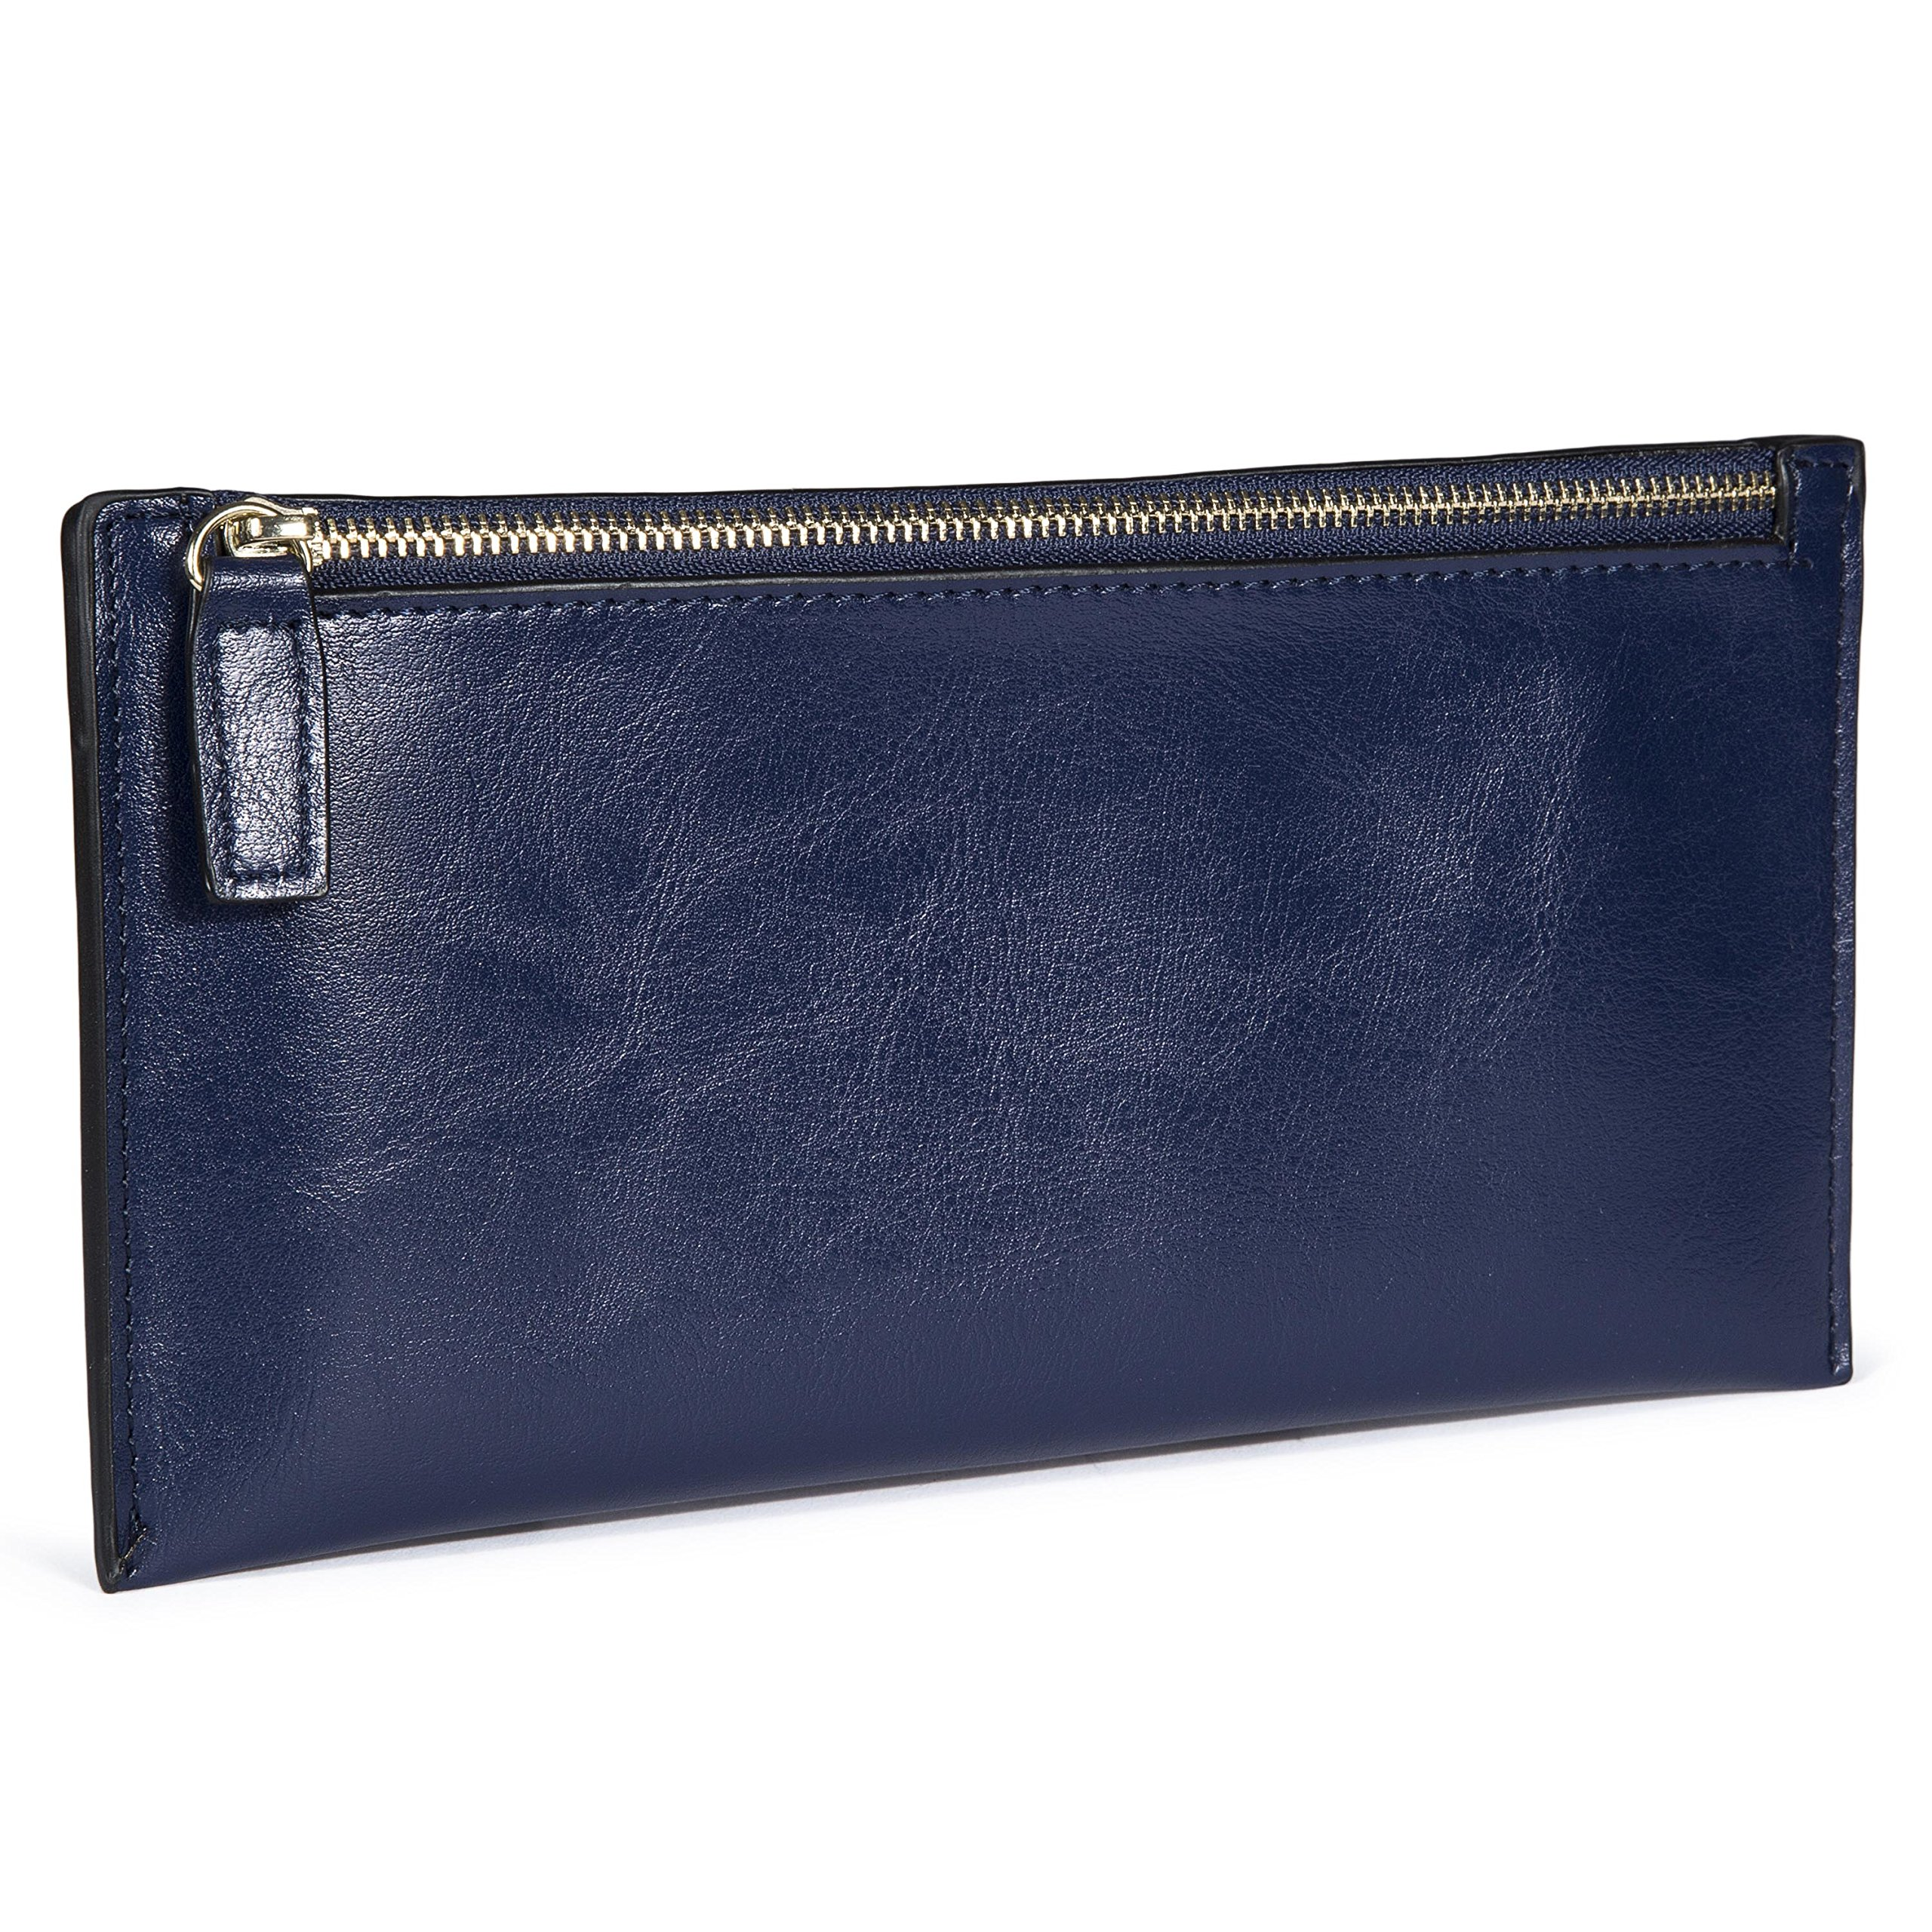 Genold Leather Long Wallet Zipper Clutch Coin Purse Slim Card Case Holder for Women with 8 Card Slots Blue